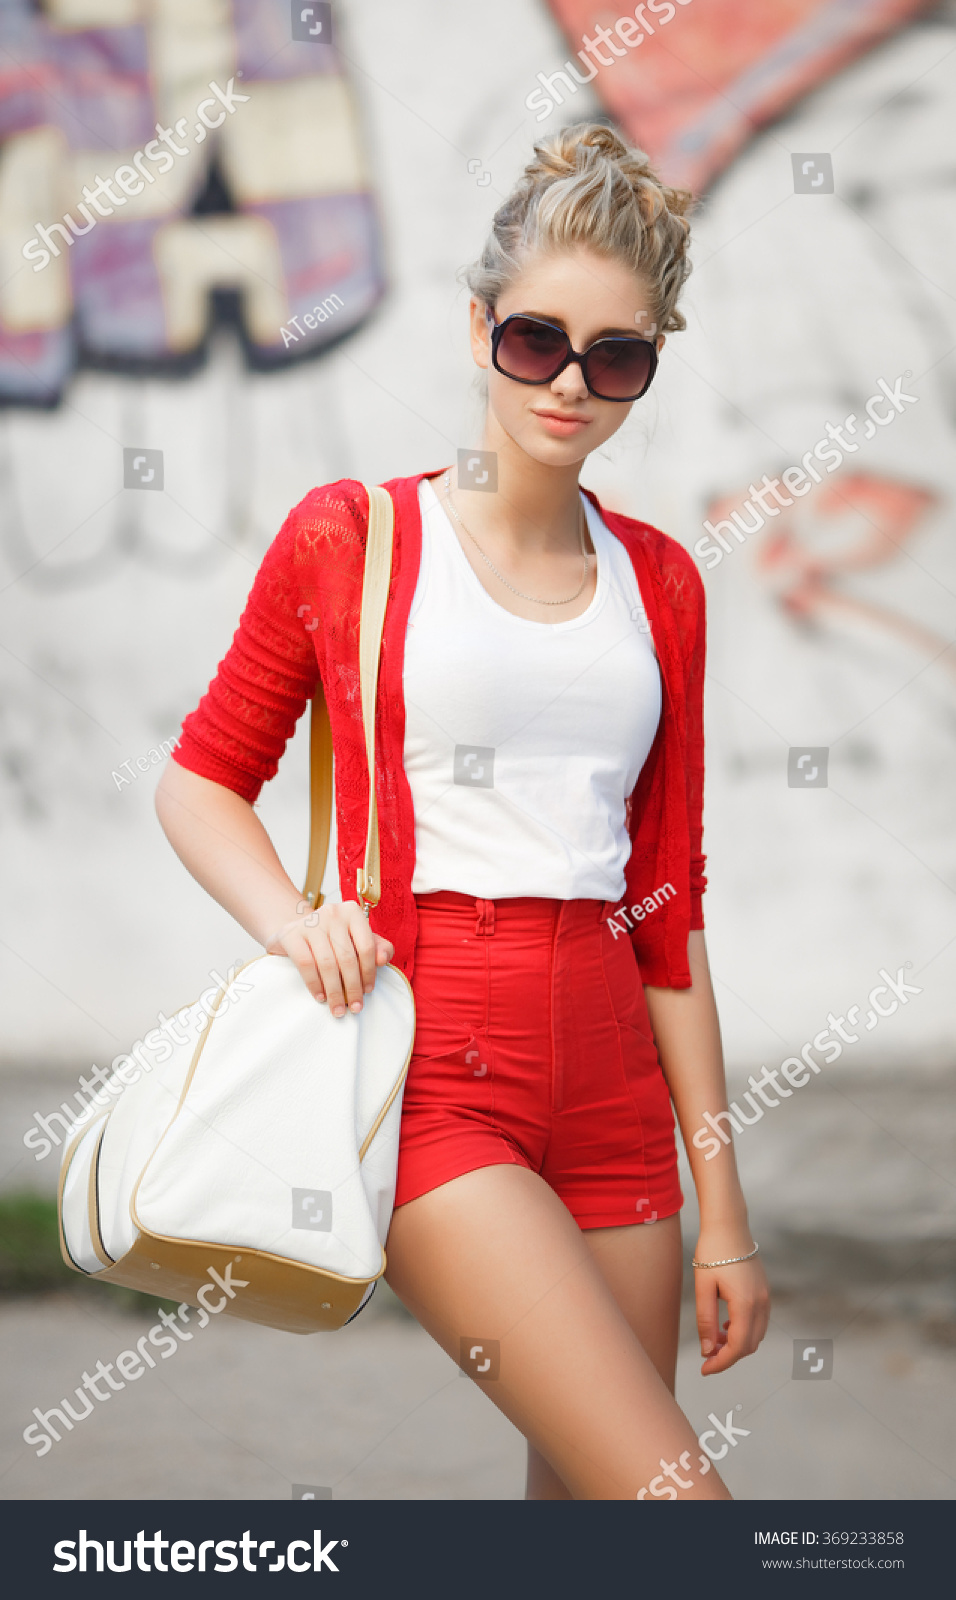 4191fbbeb576 Fashionable Young Girl Outdoor Portrait Fashion Stock Photo (Edit ...